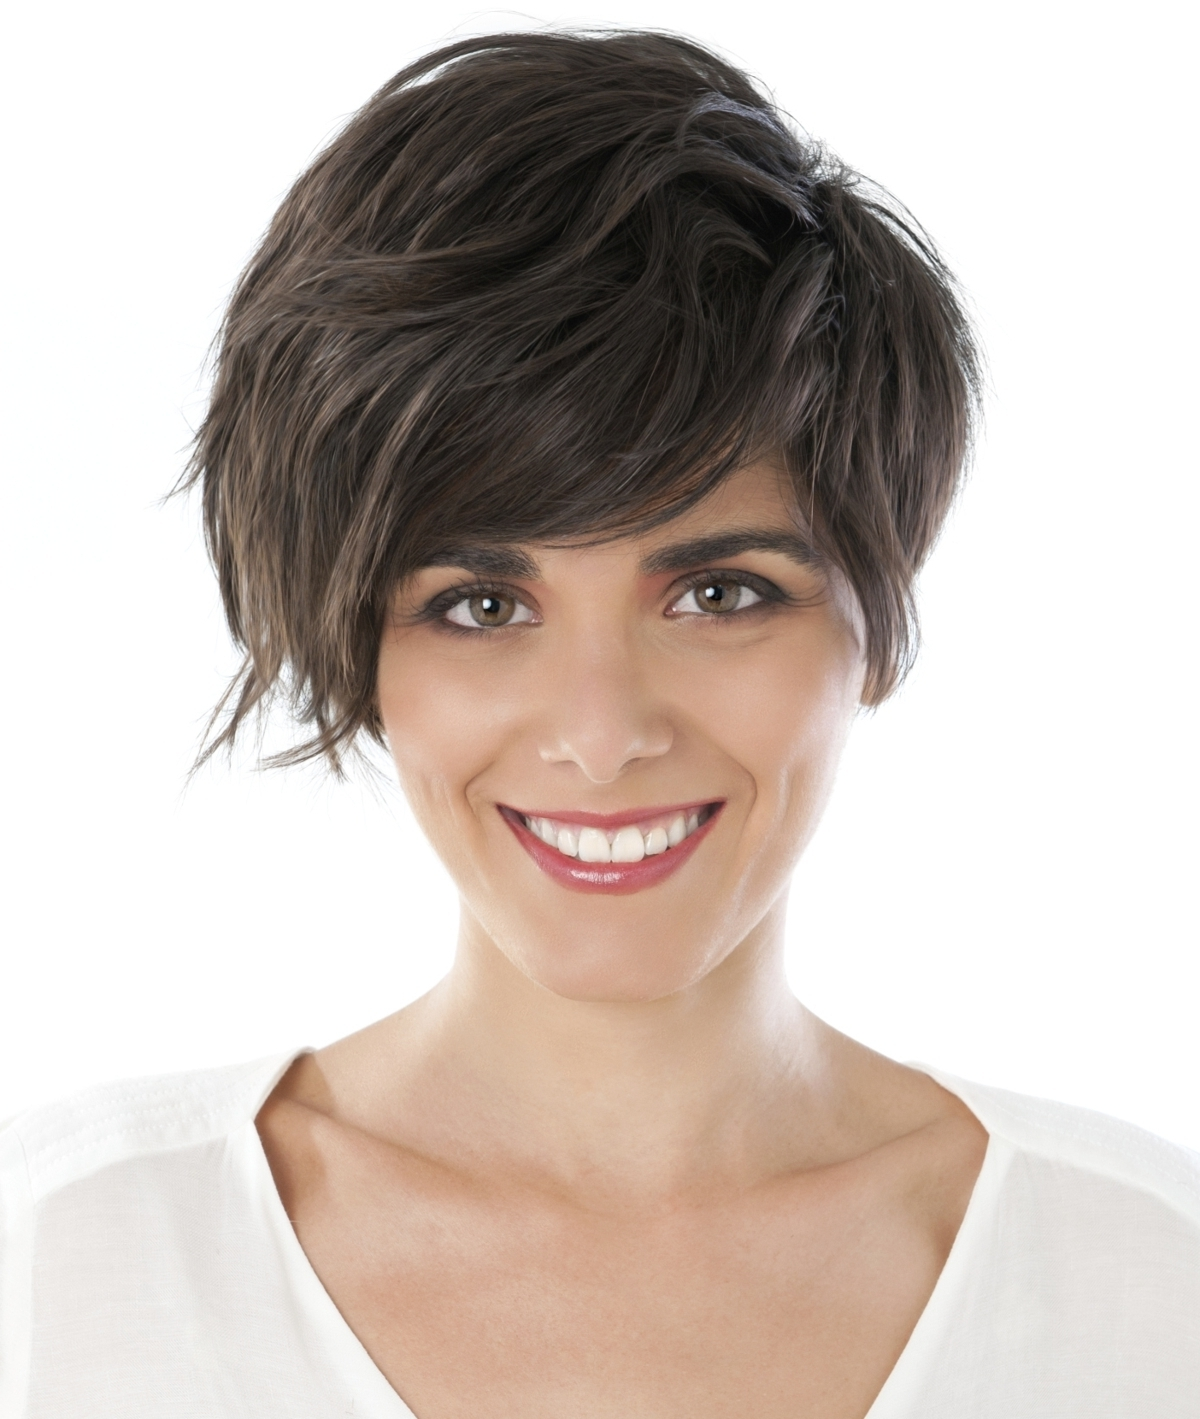 Short Hairstyles For Heart Shaped Faces That Don't Skimp On Style Within Best And Newest Pixie Hairstyles For Heart Shaped Faces (View 13 of 15)